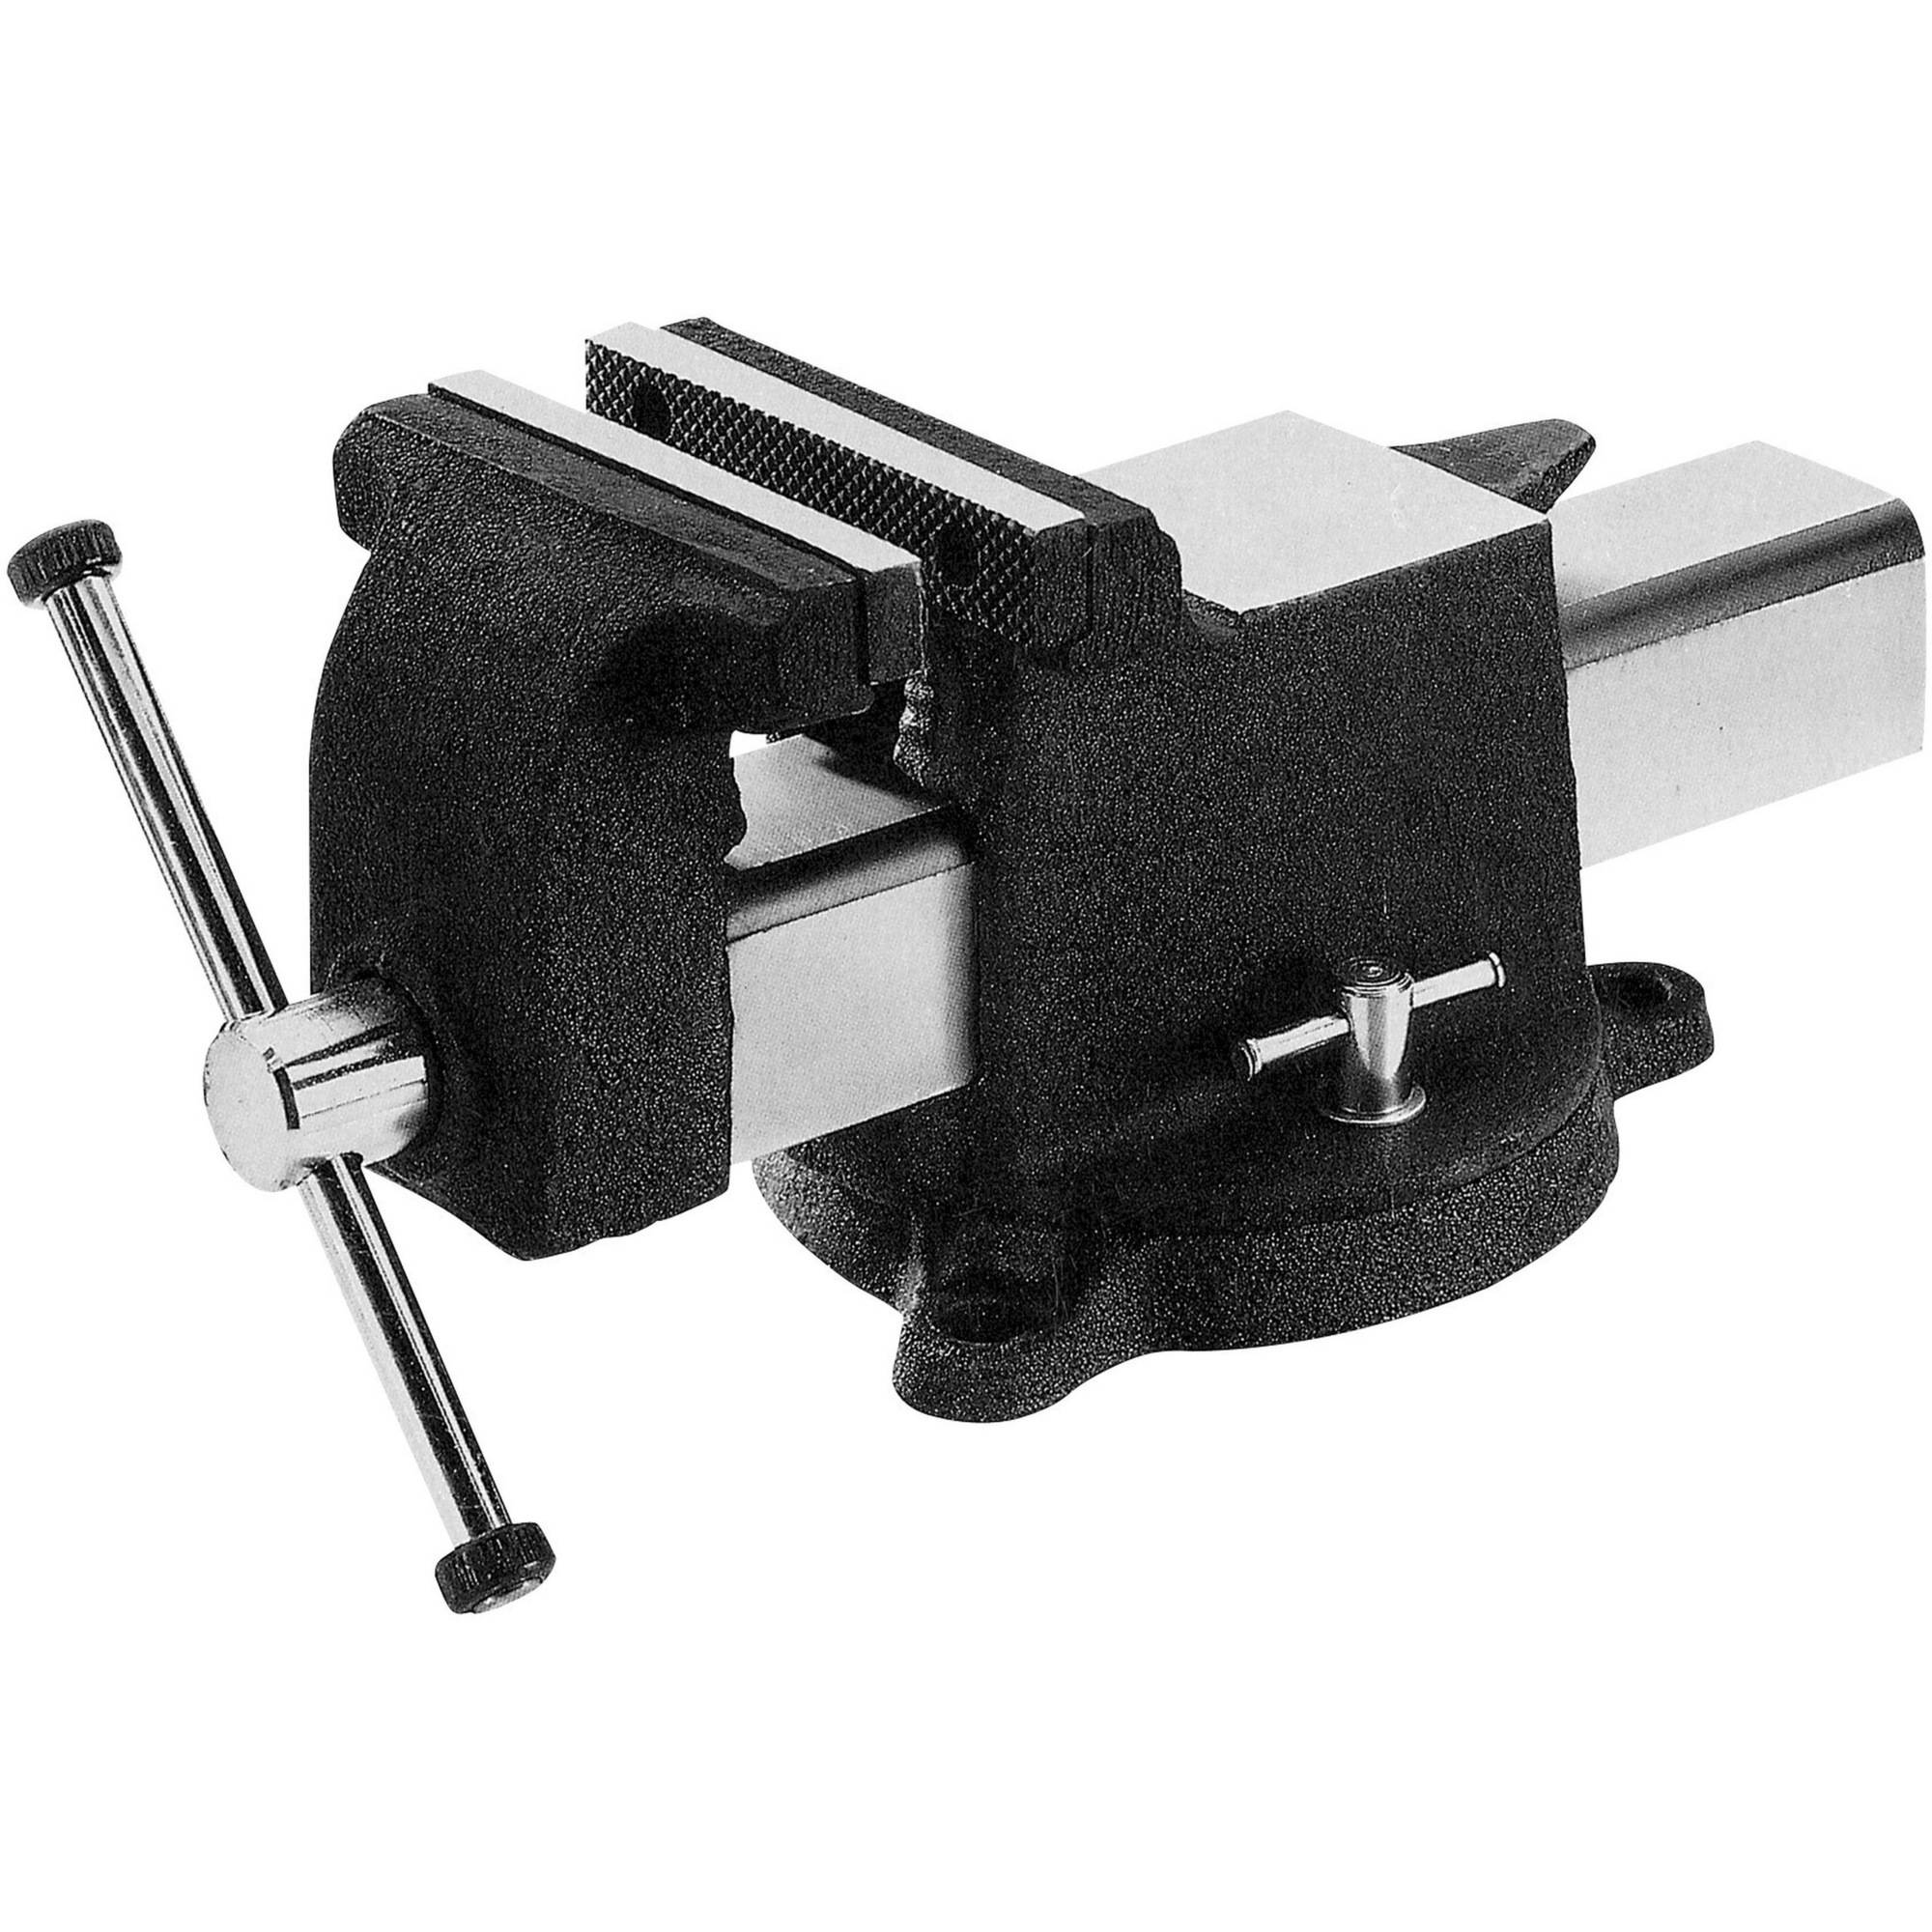 Yost 906-As All Steel Utility Combination Pipe and Bench Vise by Yost Vises